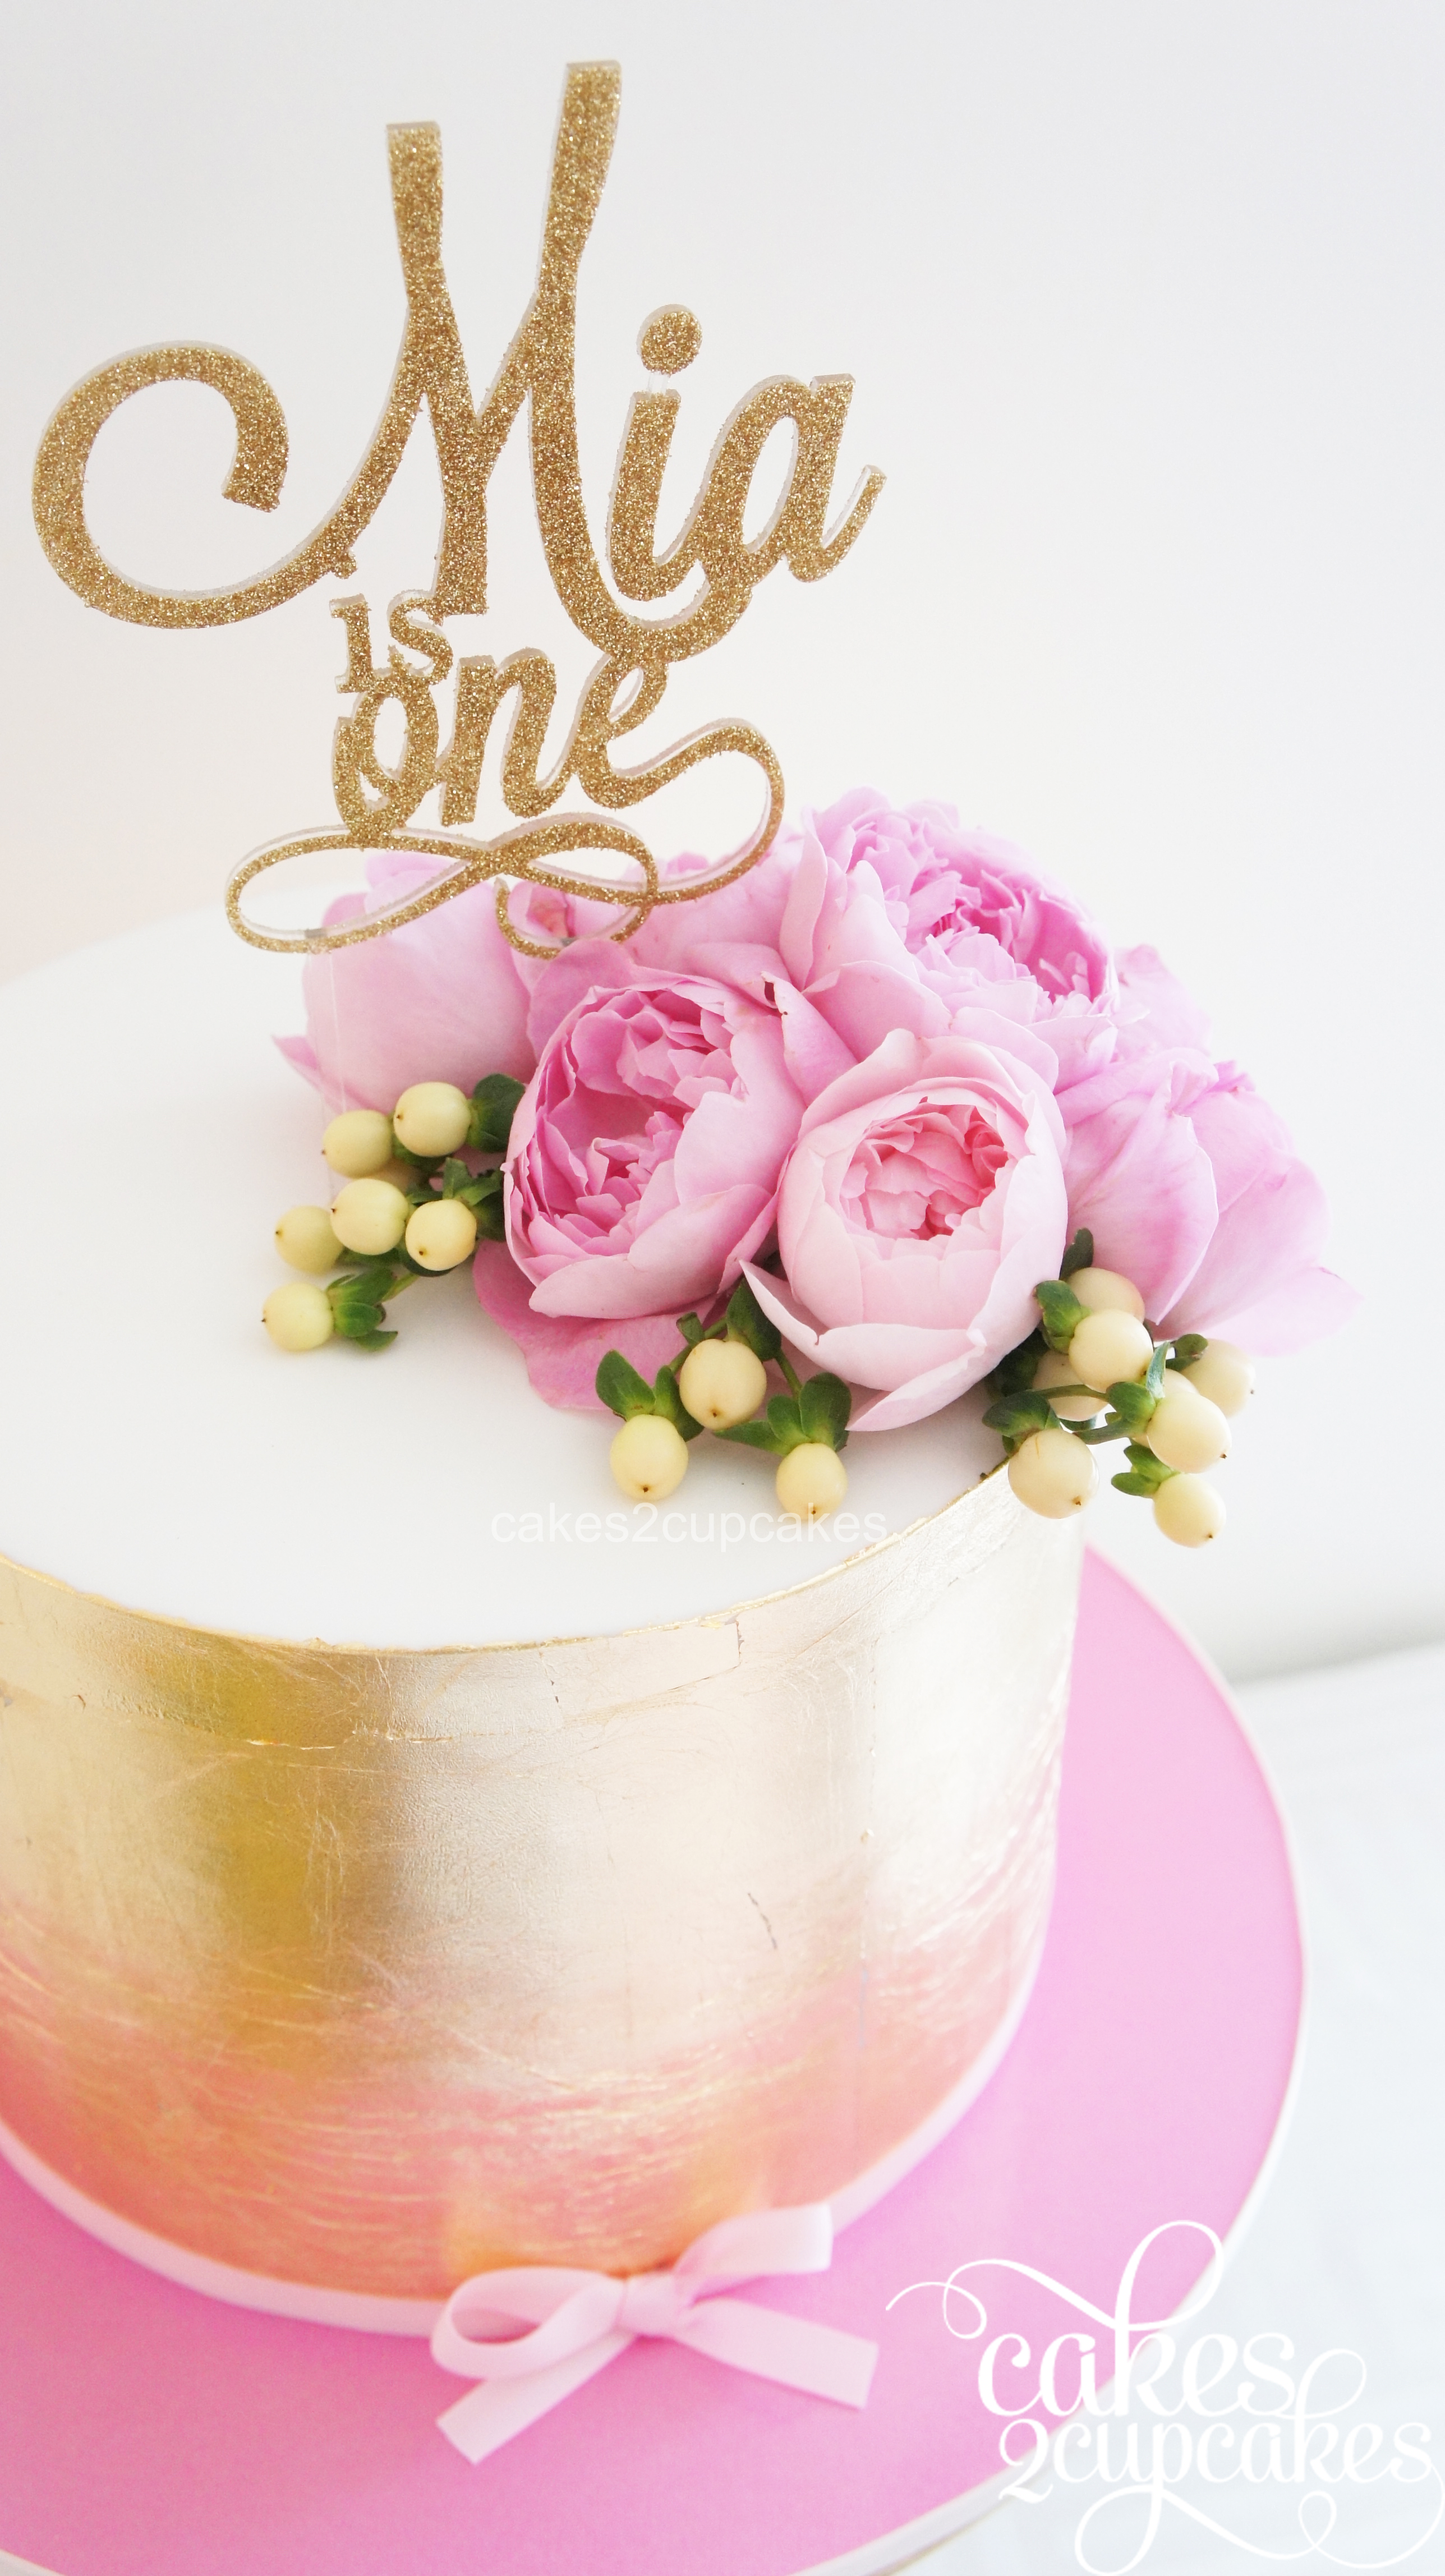 cakes2cupcakes-gold-pink.jpg